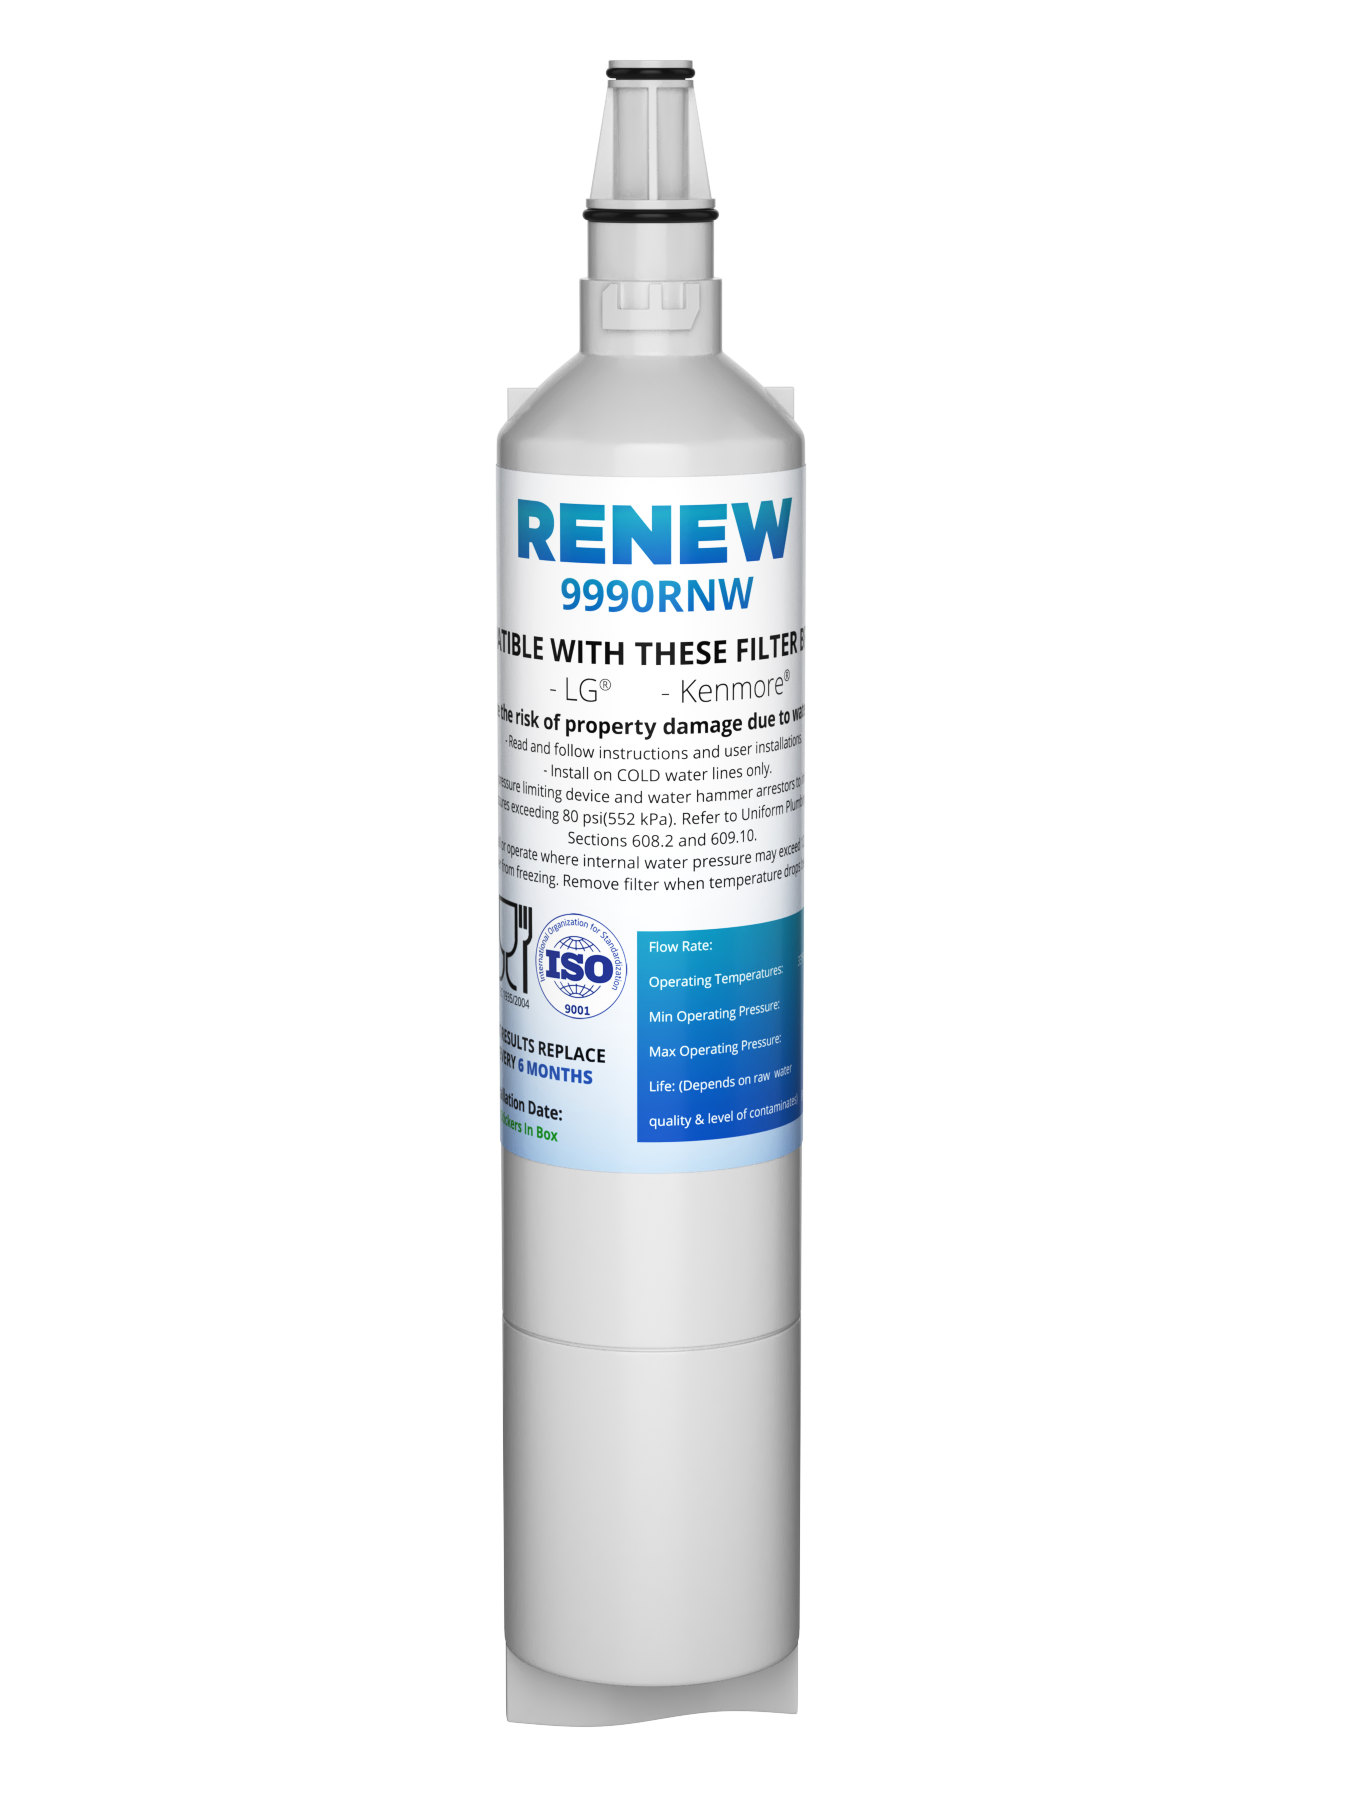 Renew 9990RNW Replacement Water Filter - Fits LG 5231JA2006A, LFX25960ST, LFX25971ST, and more!